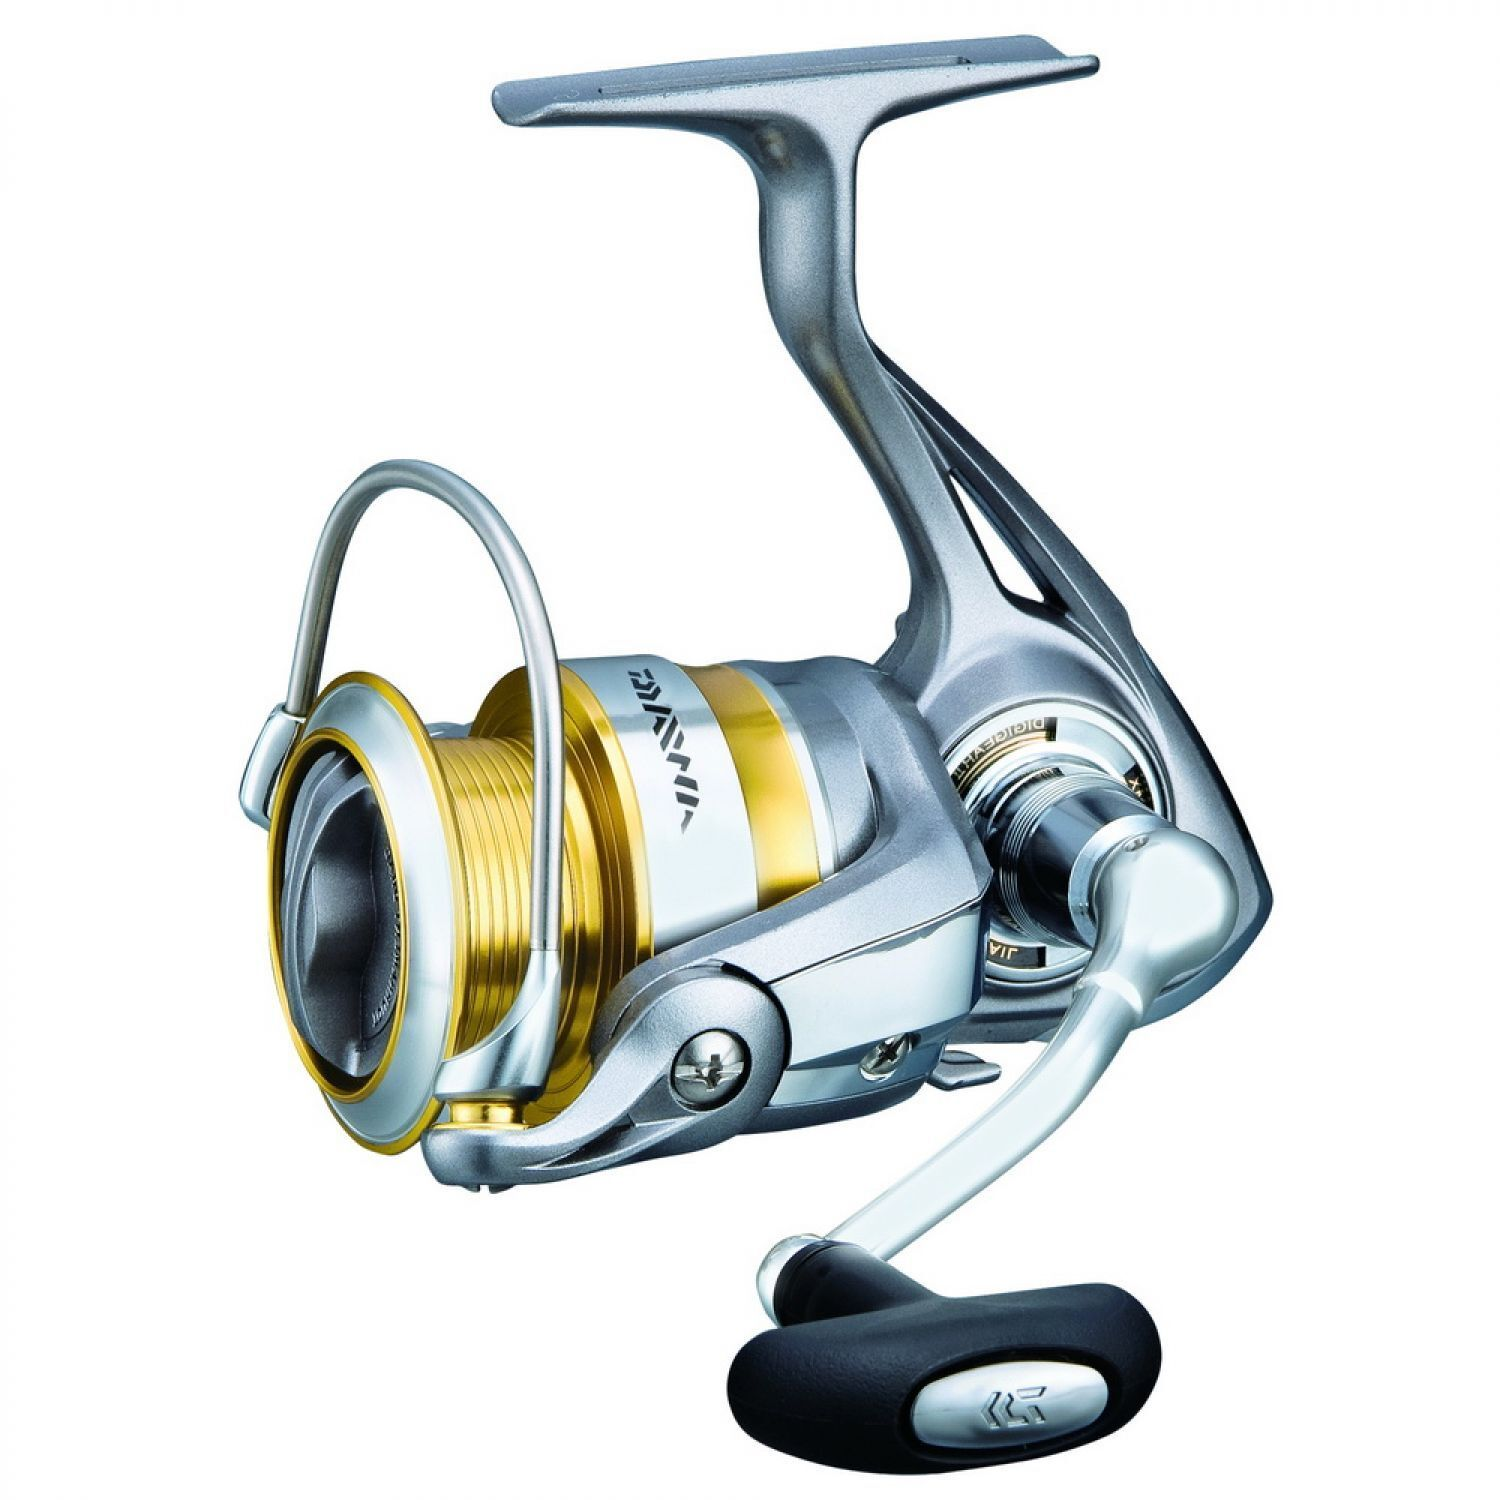 Daiwa REVROS MX 2004 Spinnrolle Frontbremsrolle Angelrolle